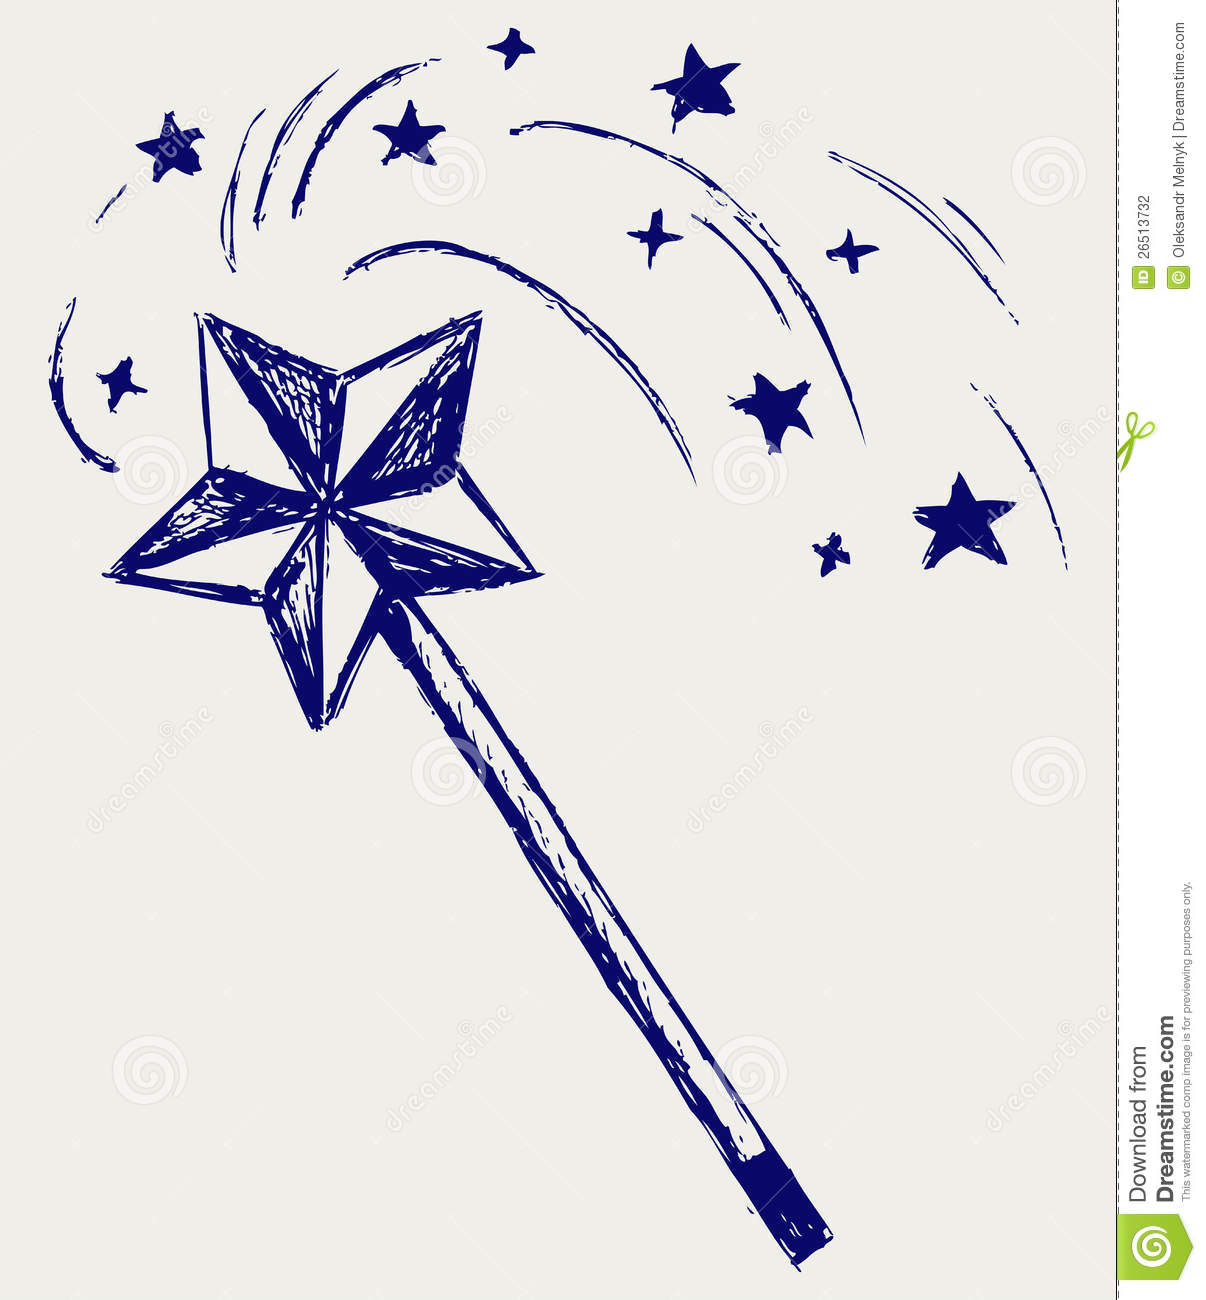 Magic Wand Stock Photography - Image: 26513732